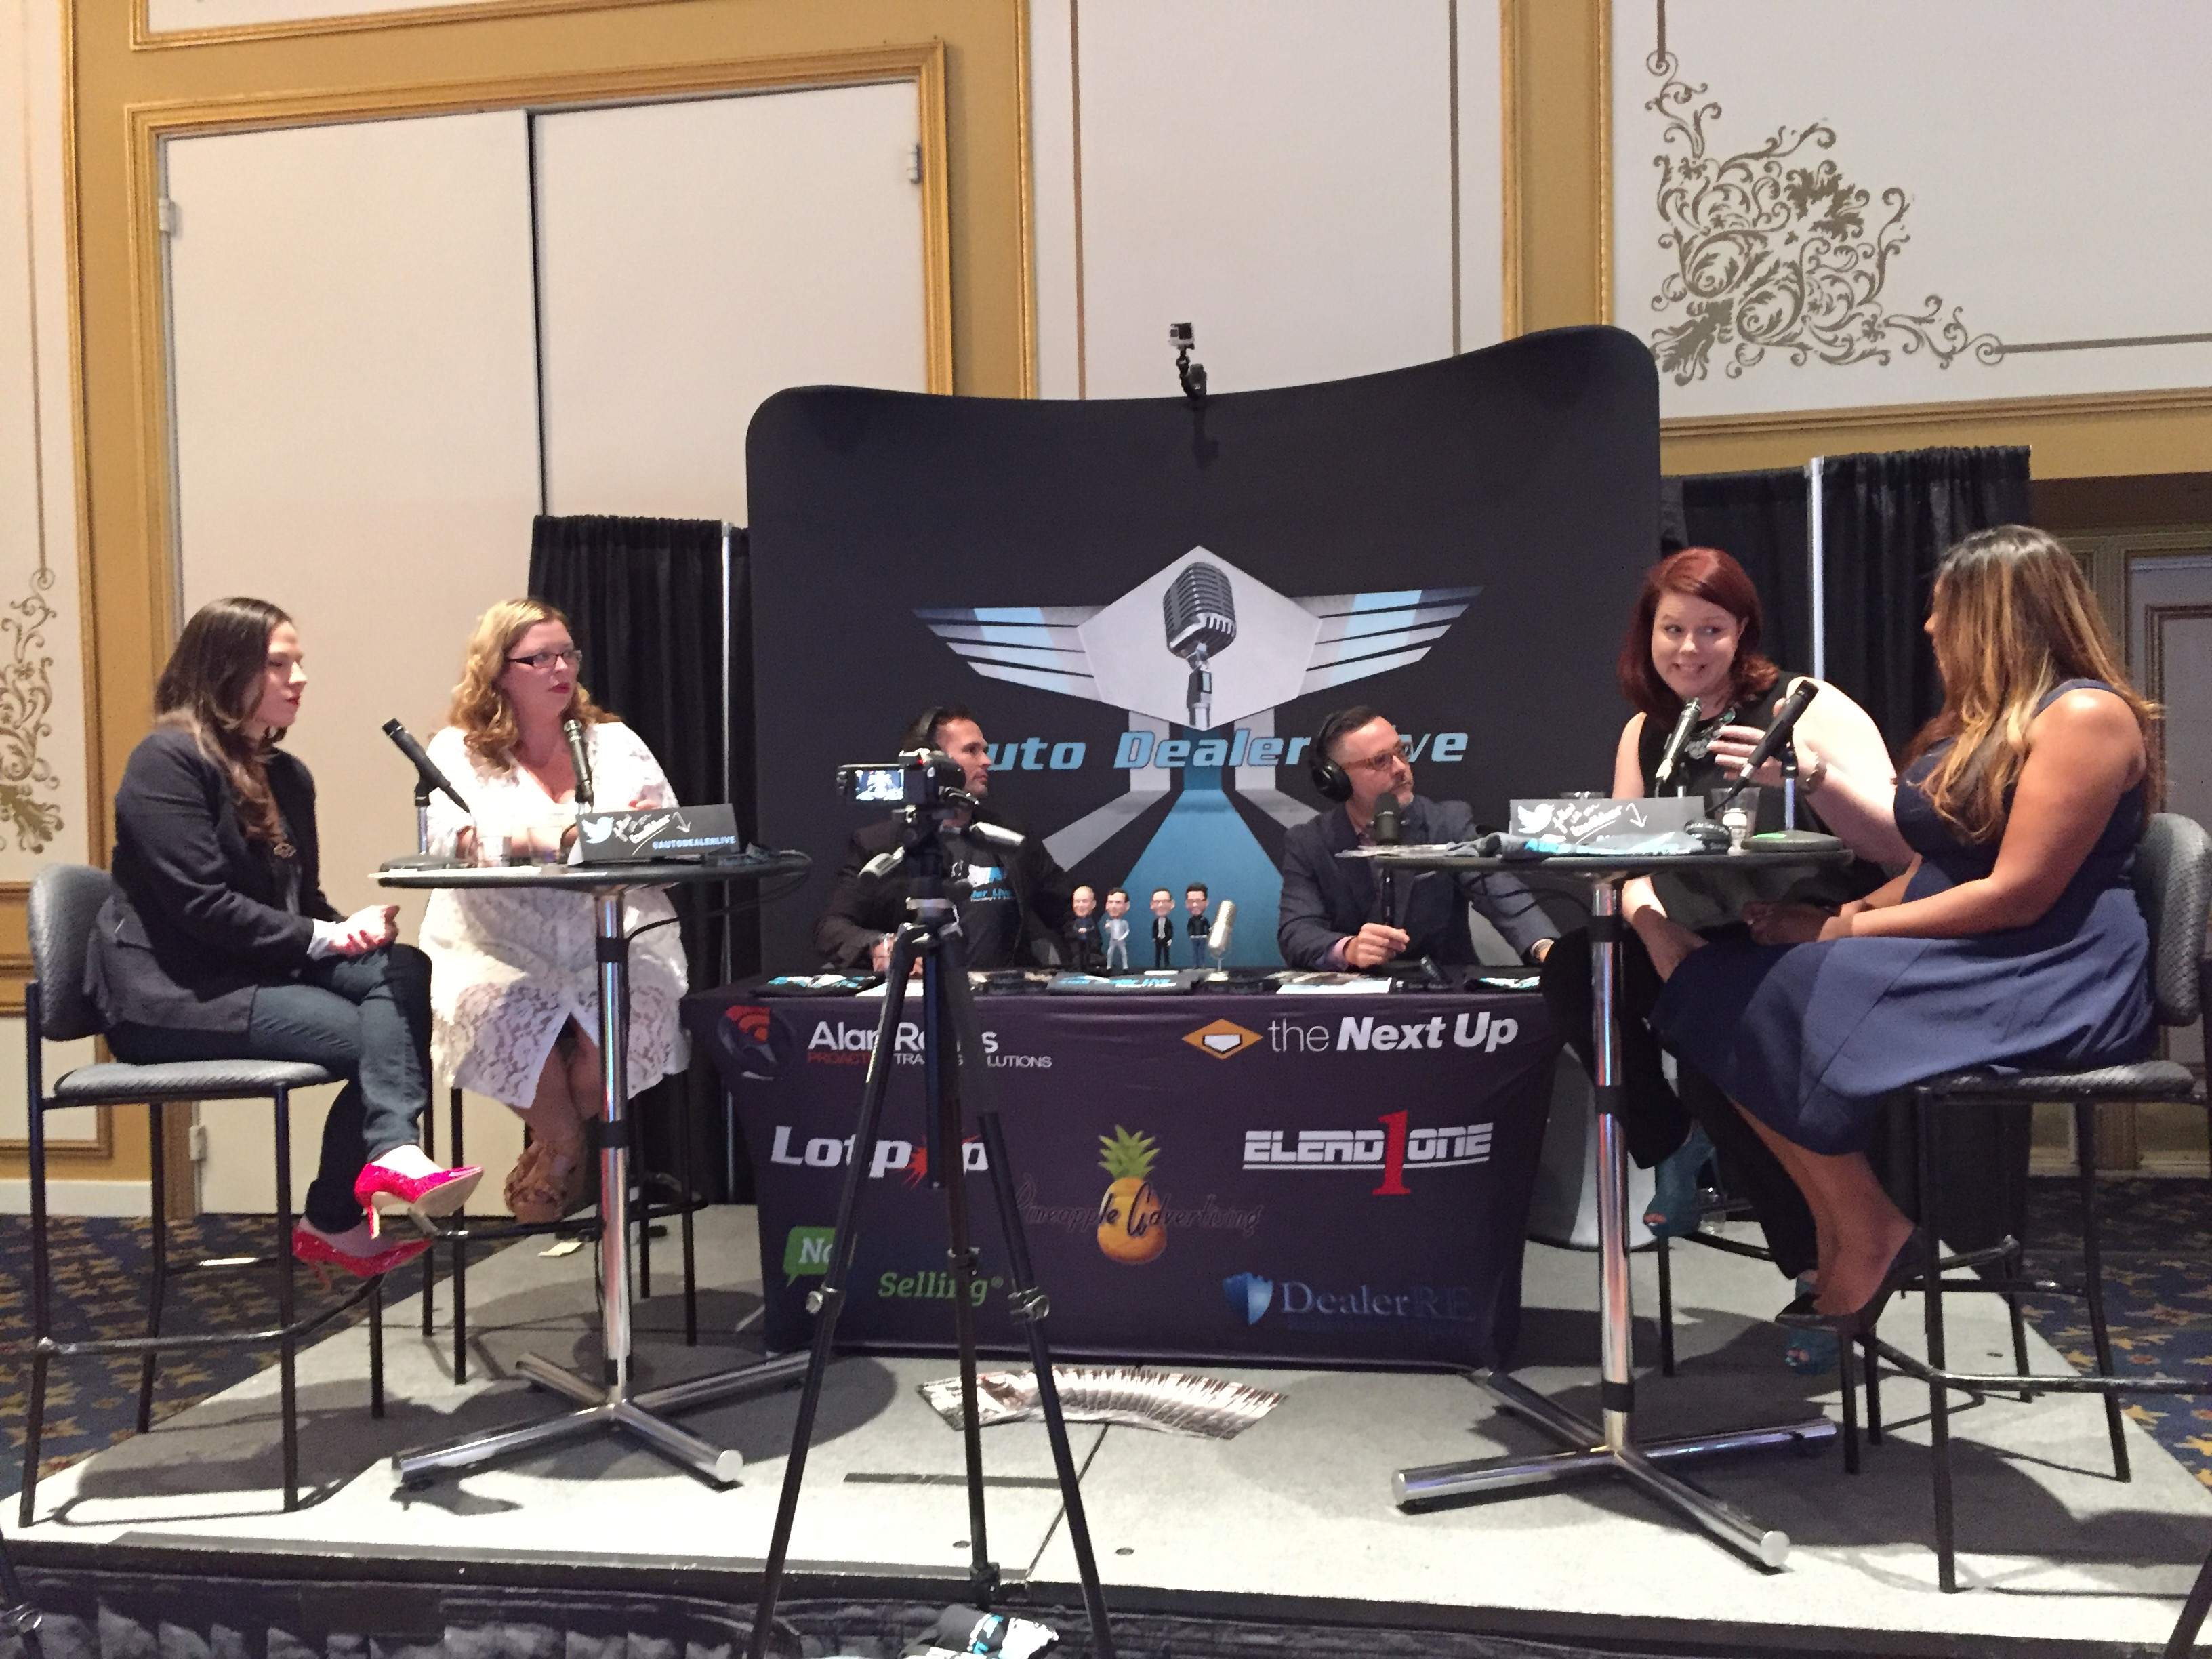 The Women Who Rock Auto during AutoDealer Live, including Jennifer Briggs